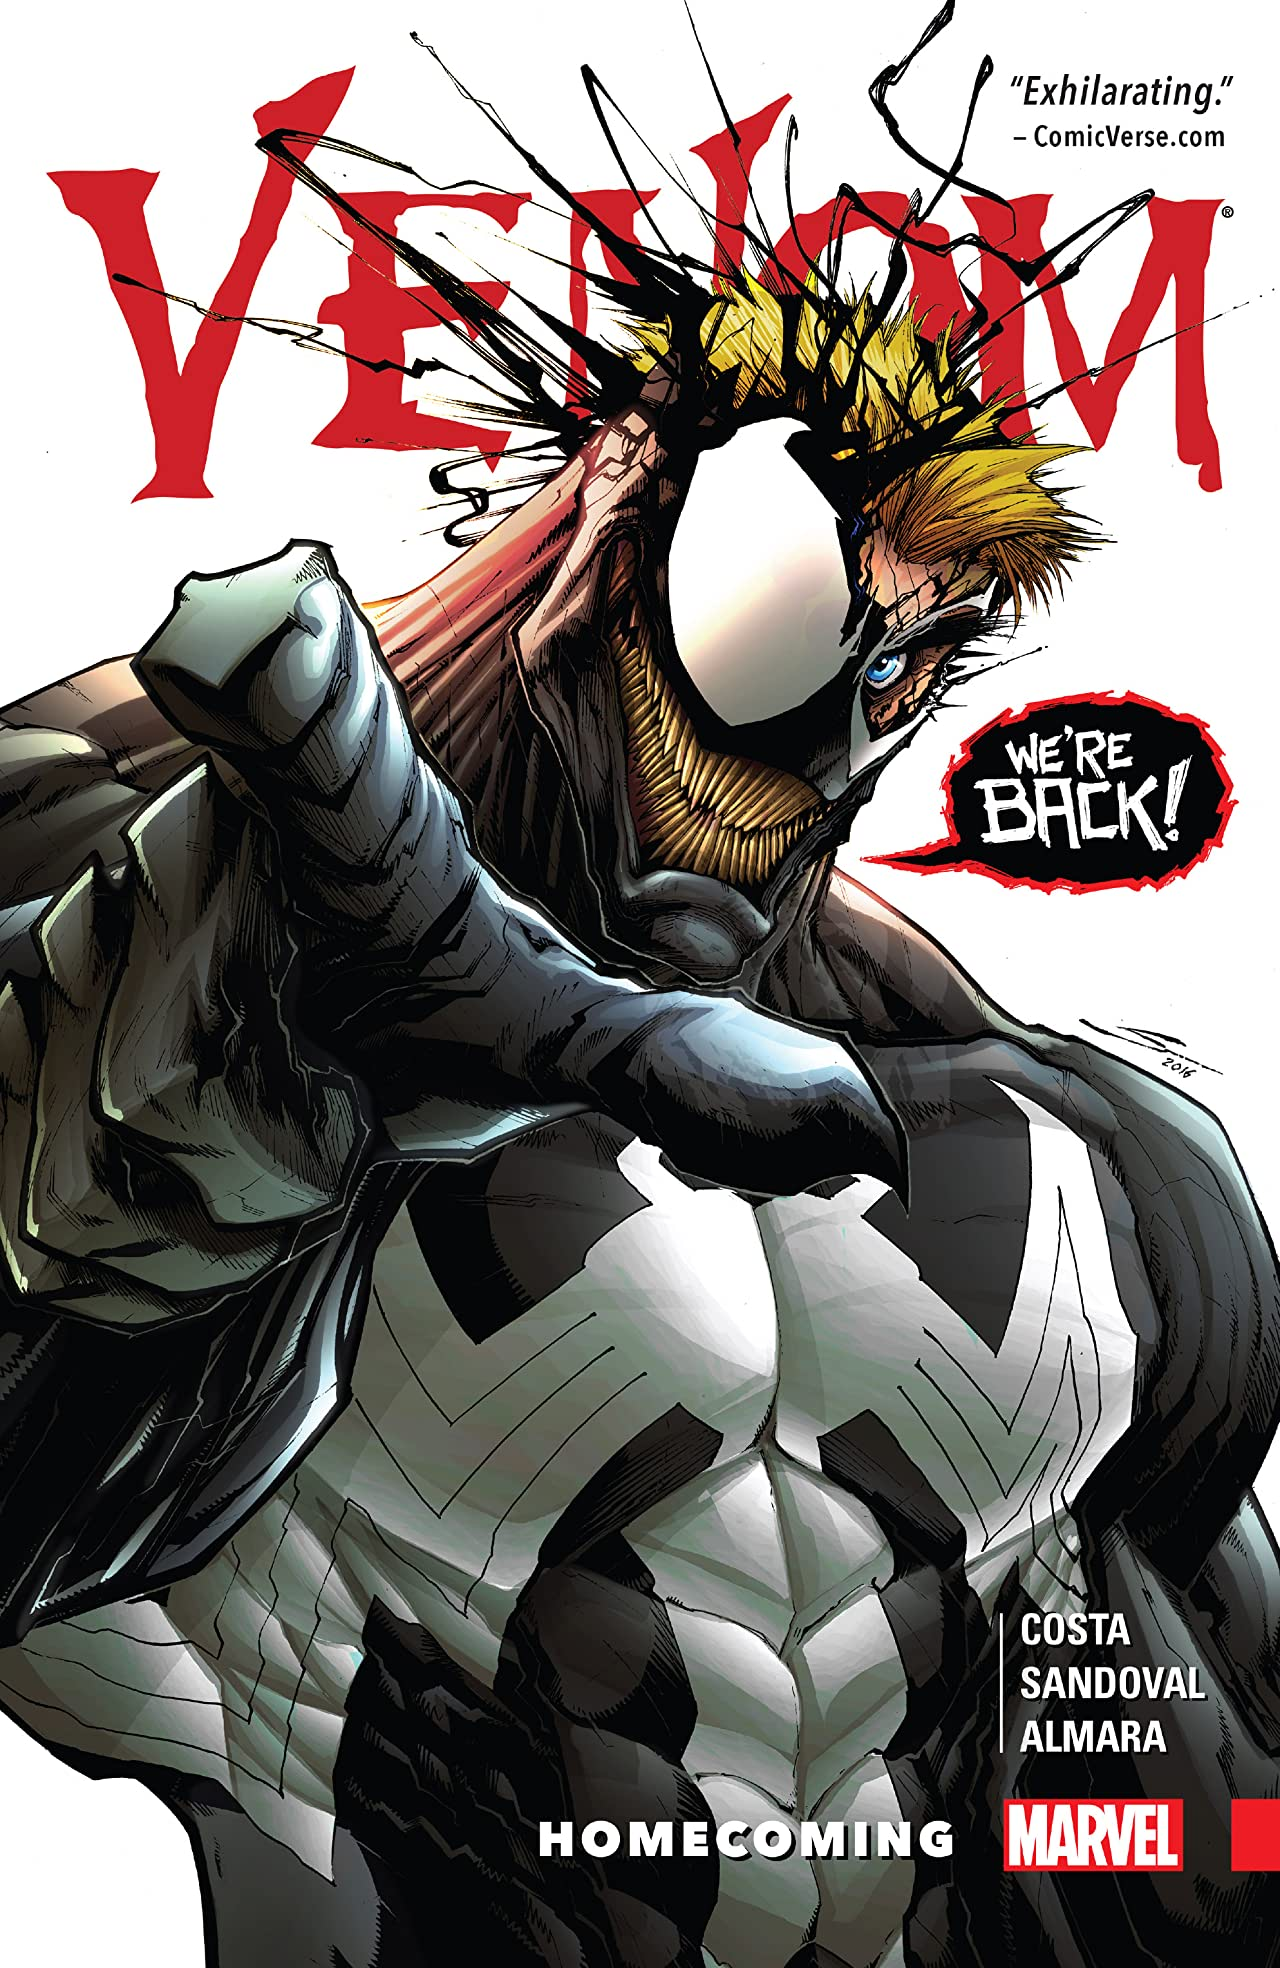 Venom Vol. 1: Homecoming